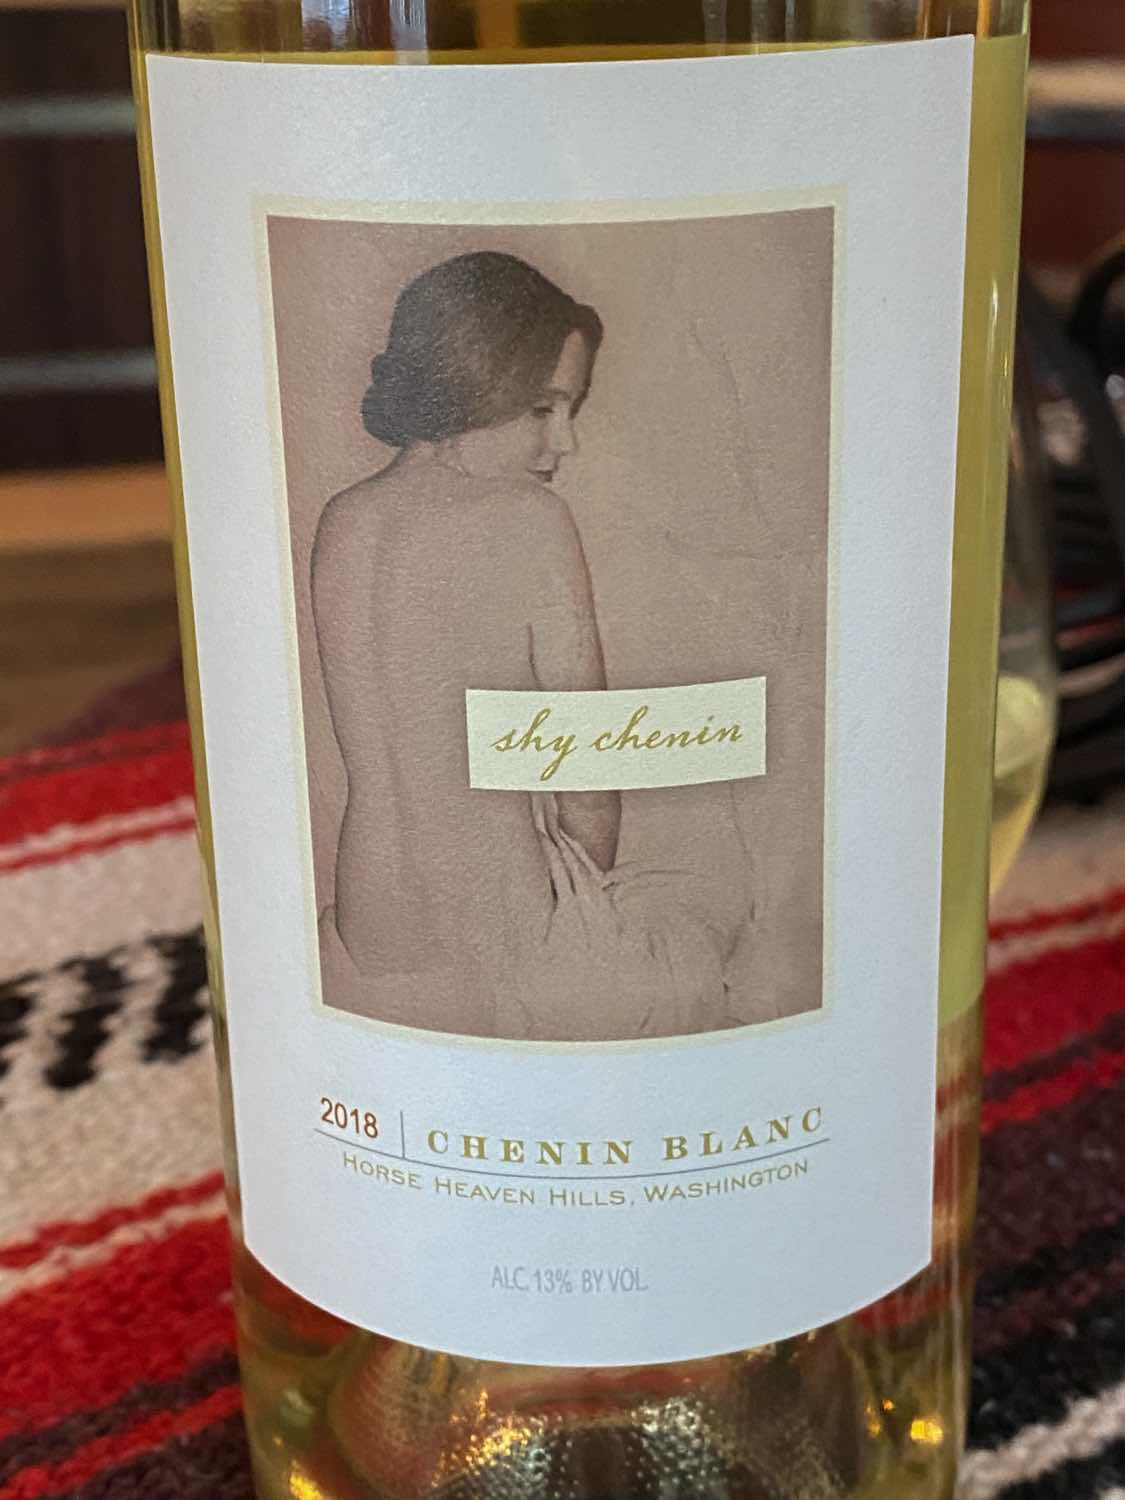 Follow Chenin Carlton Instagram – https://www.instagram.com/shychenin/ Follow Twist Wine Company Website – https://www.twistwine.com/ Facebook – https://www.facebook.com/TwistWineCo Instagram – https://www.instagram.com/twist_wine_co/ Twitter – https://twitter.com/HoltmansDonuts